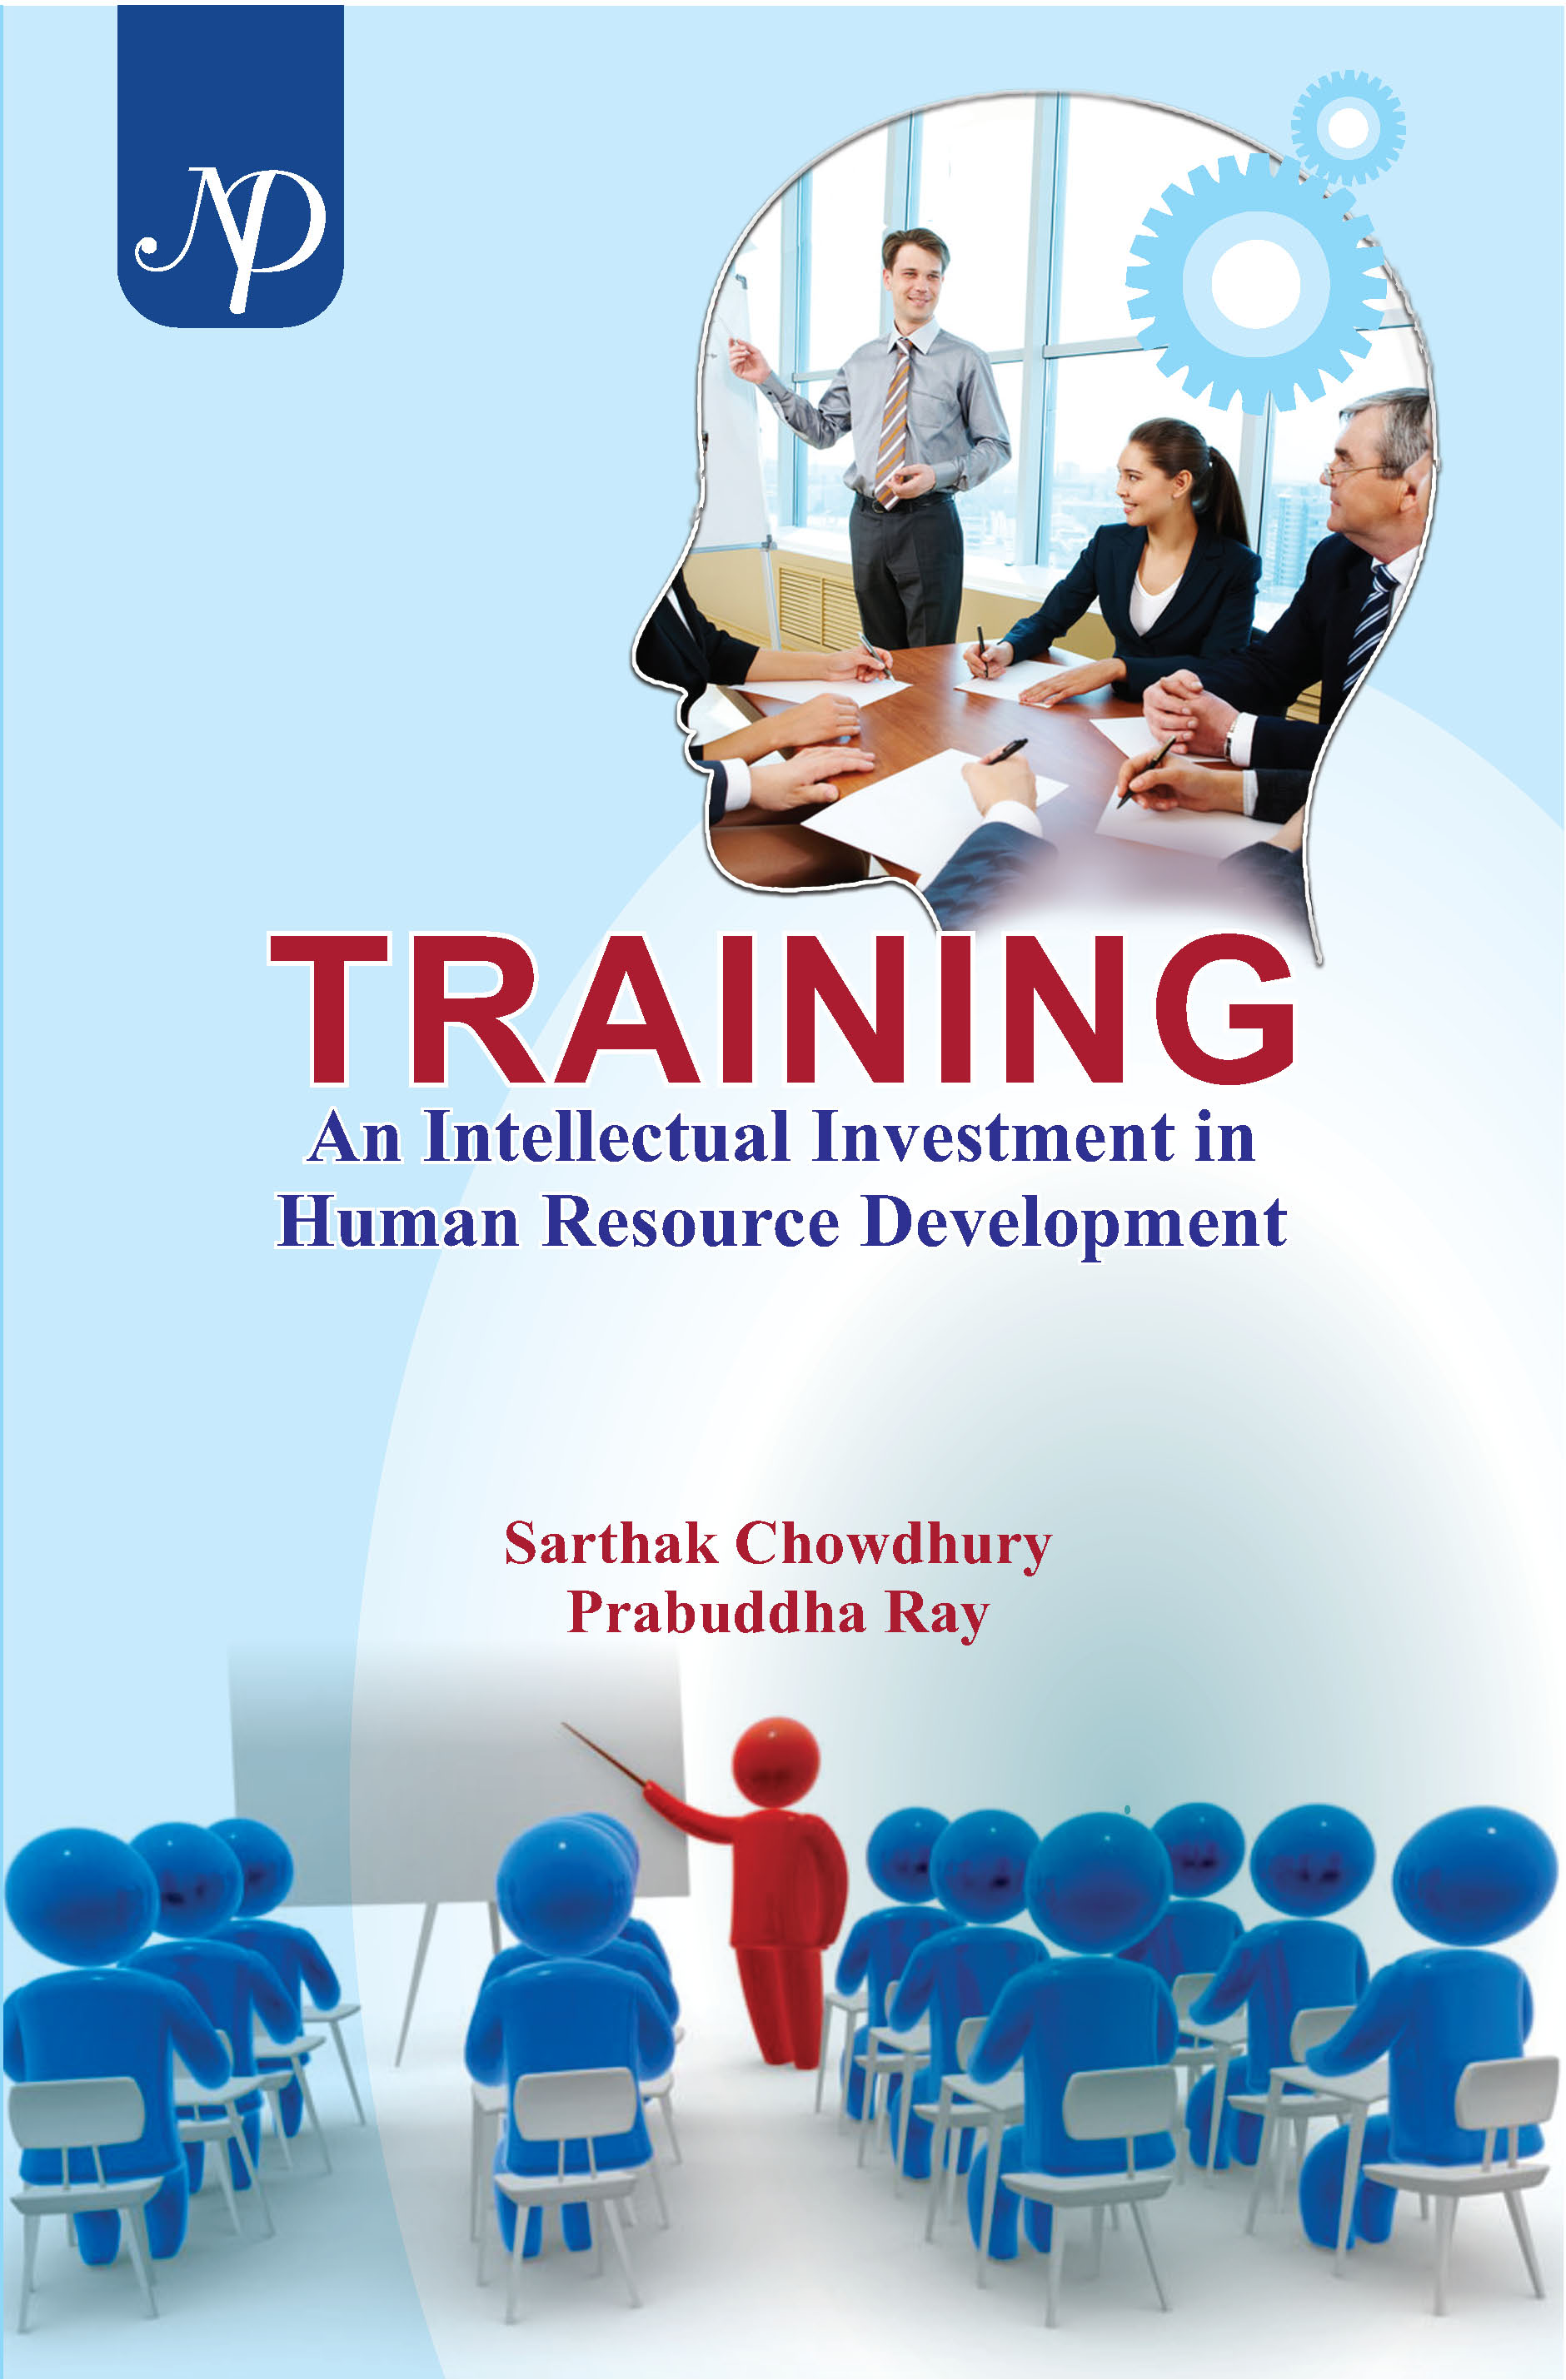 Training An Intellectual Investment in  Human Resources Development.jpg